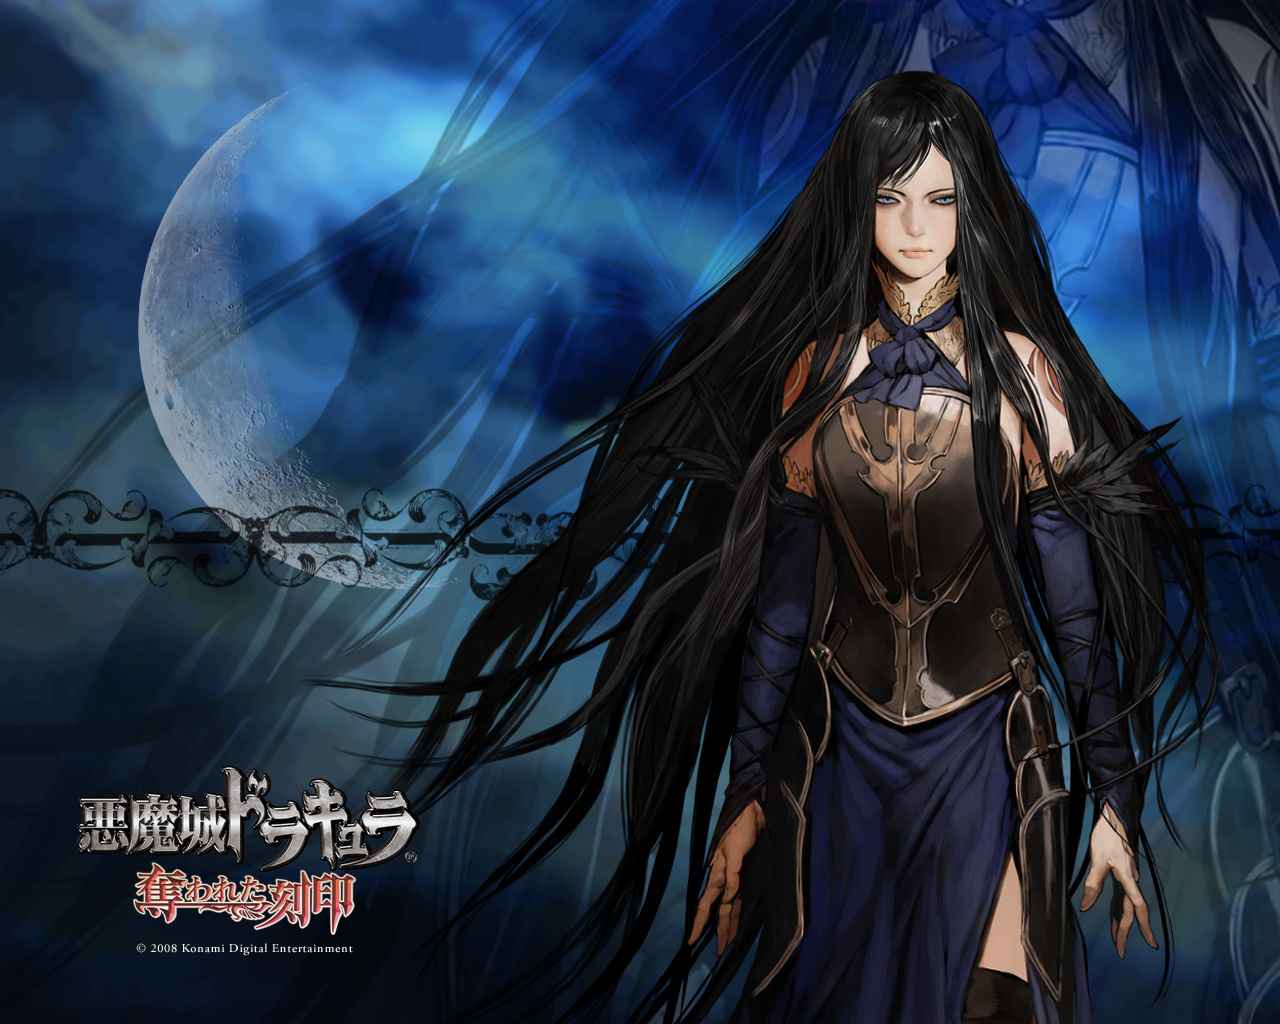 castlevania order of ecclesia HD Wallpaper